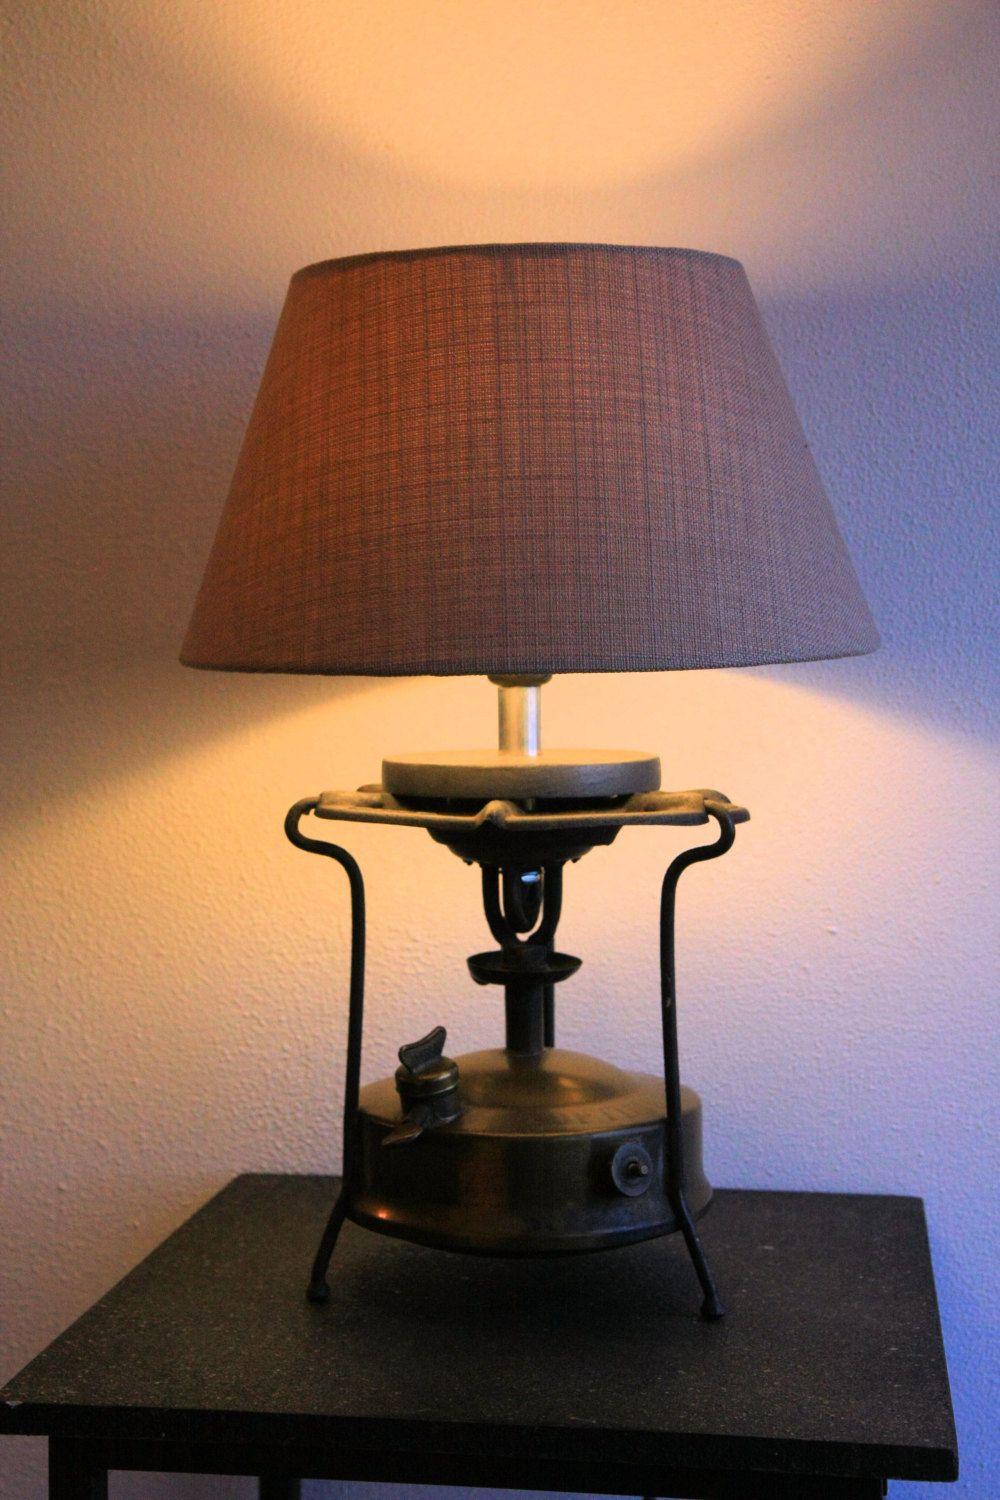 Table Lamp Optimus Copper Jug Lamp 1930 S Vintage Dutch Design Unique Accent Light Upcycling Gift Present Gas Ligh Lamp Copper Table Lamp Table Lamp